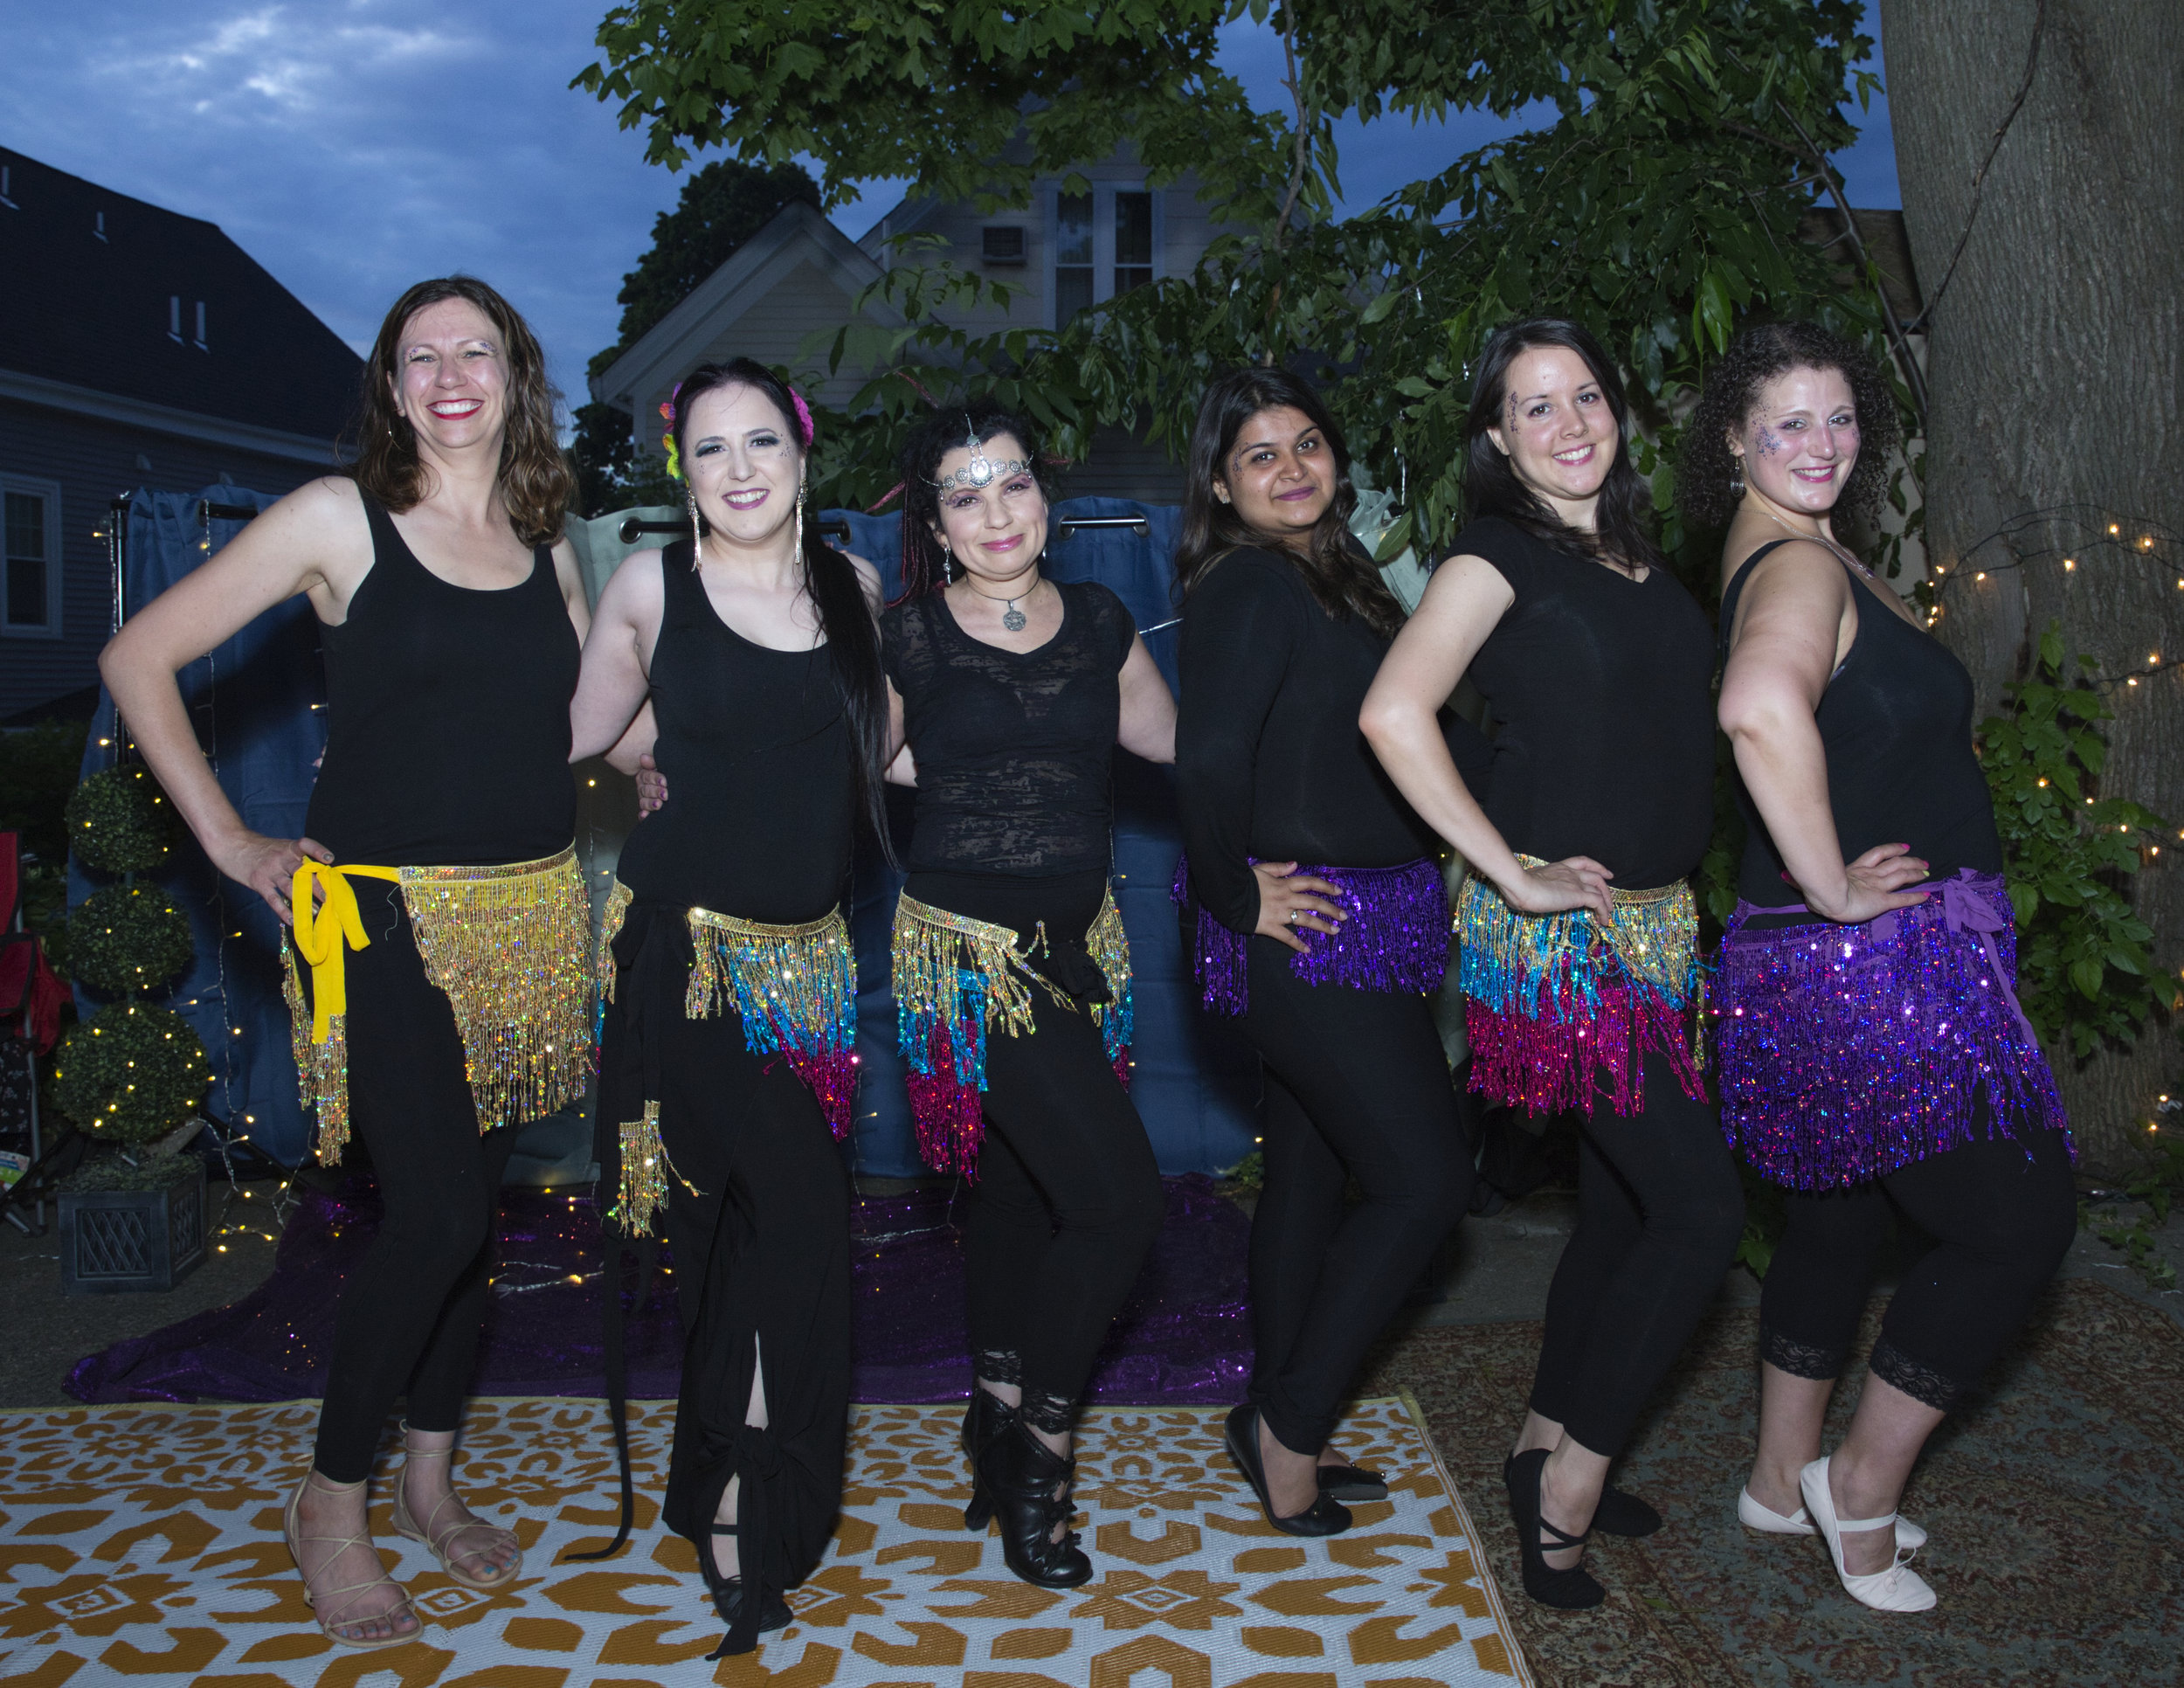 Andromeda's Belly Dancers at her annual Birthday Hafla 2019, photo by Mark Curelop